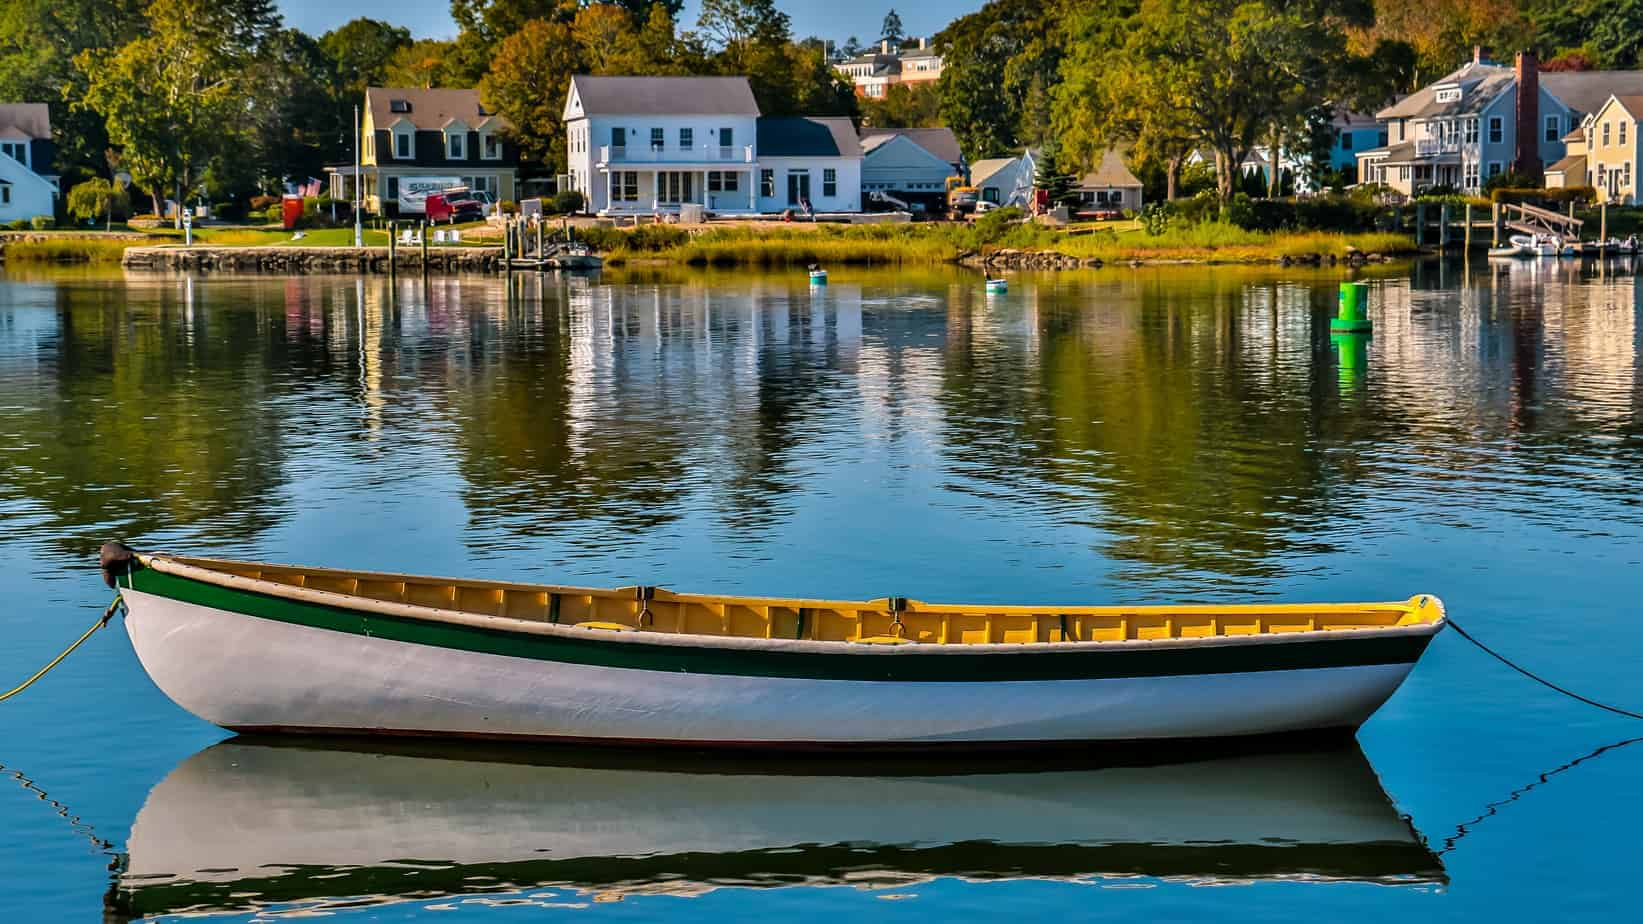 things to do in mystic CT photo of rowboat in foreground on still water, New England houses in background